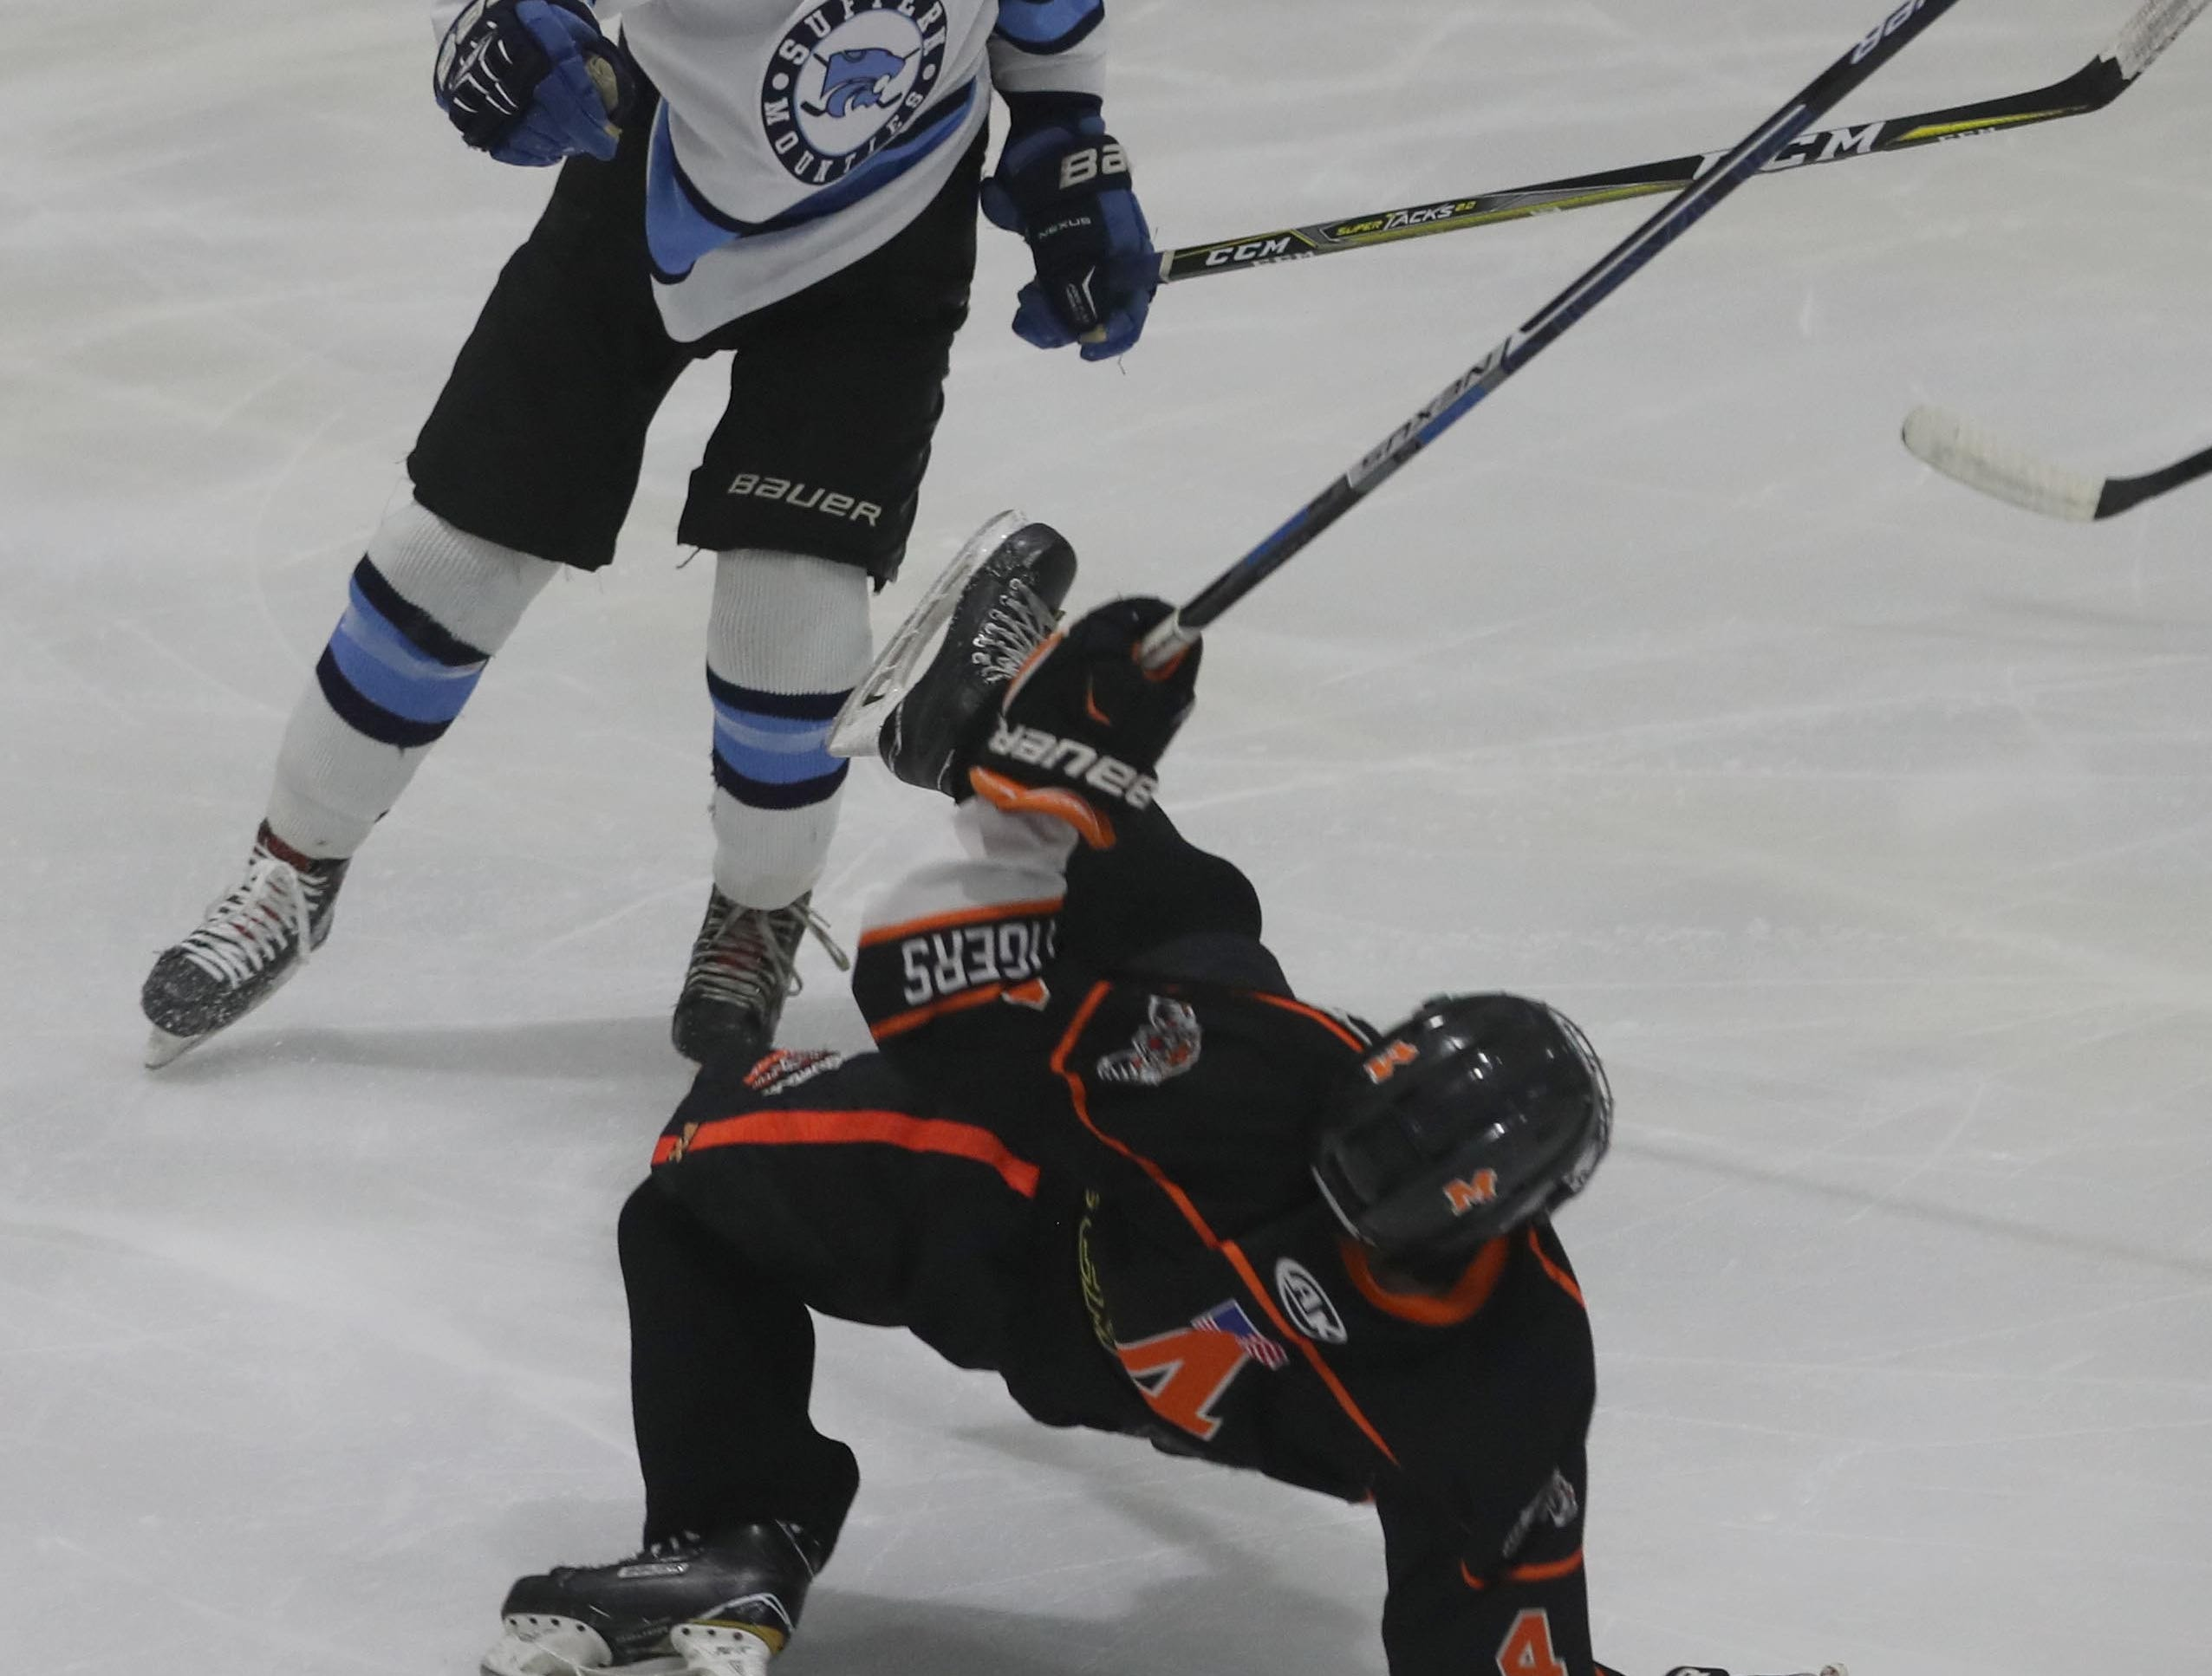 Mamaroneck's Tommy Conley goes down after a hit by Suffern's CJ Olsen during the Section 1 Division 1 championship game at Sport-o-Rama in Monsey Feb. 24, 2019. Suffern defeated Mamaroneck 4-1.Suffern defeated Mamaroneck 4-1.